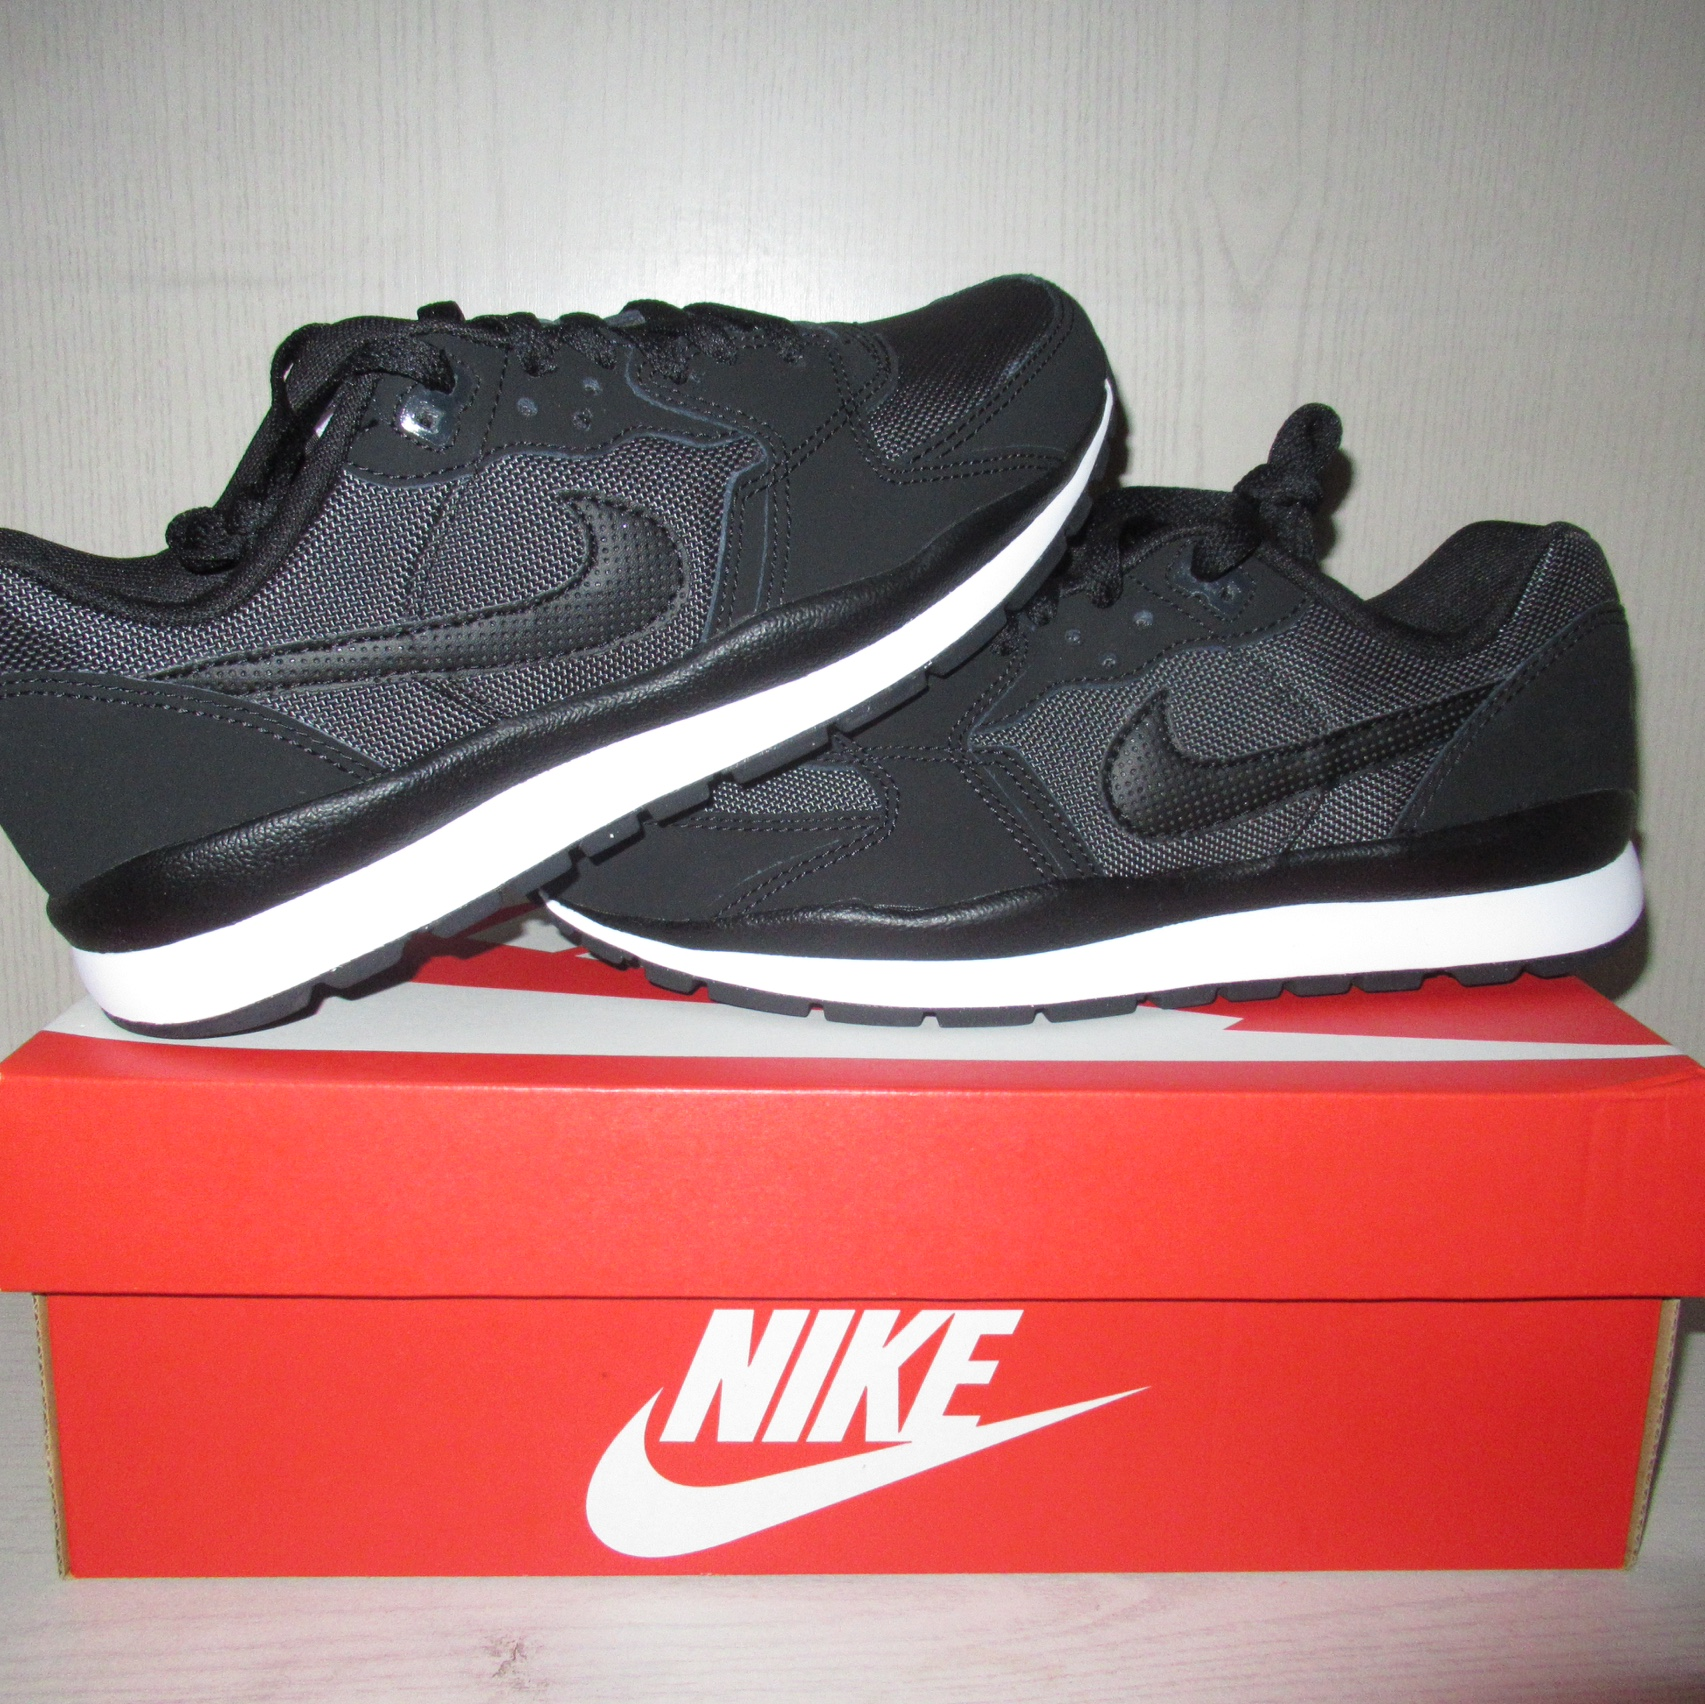 Nike Air Windrunner TR 2 Condition